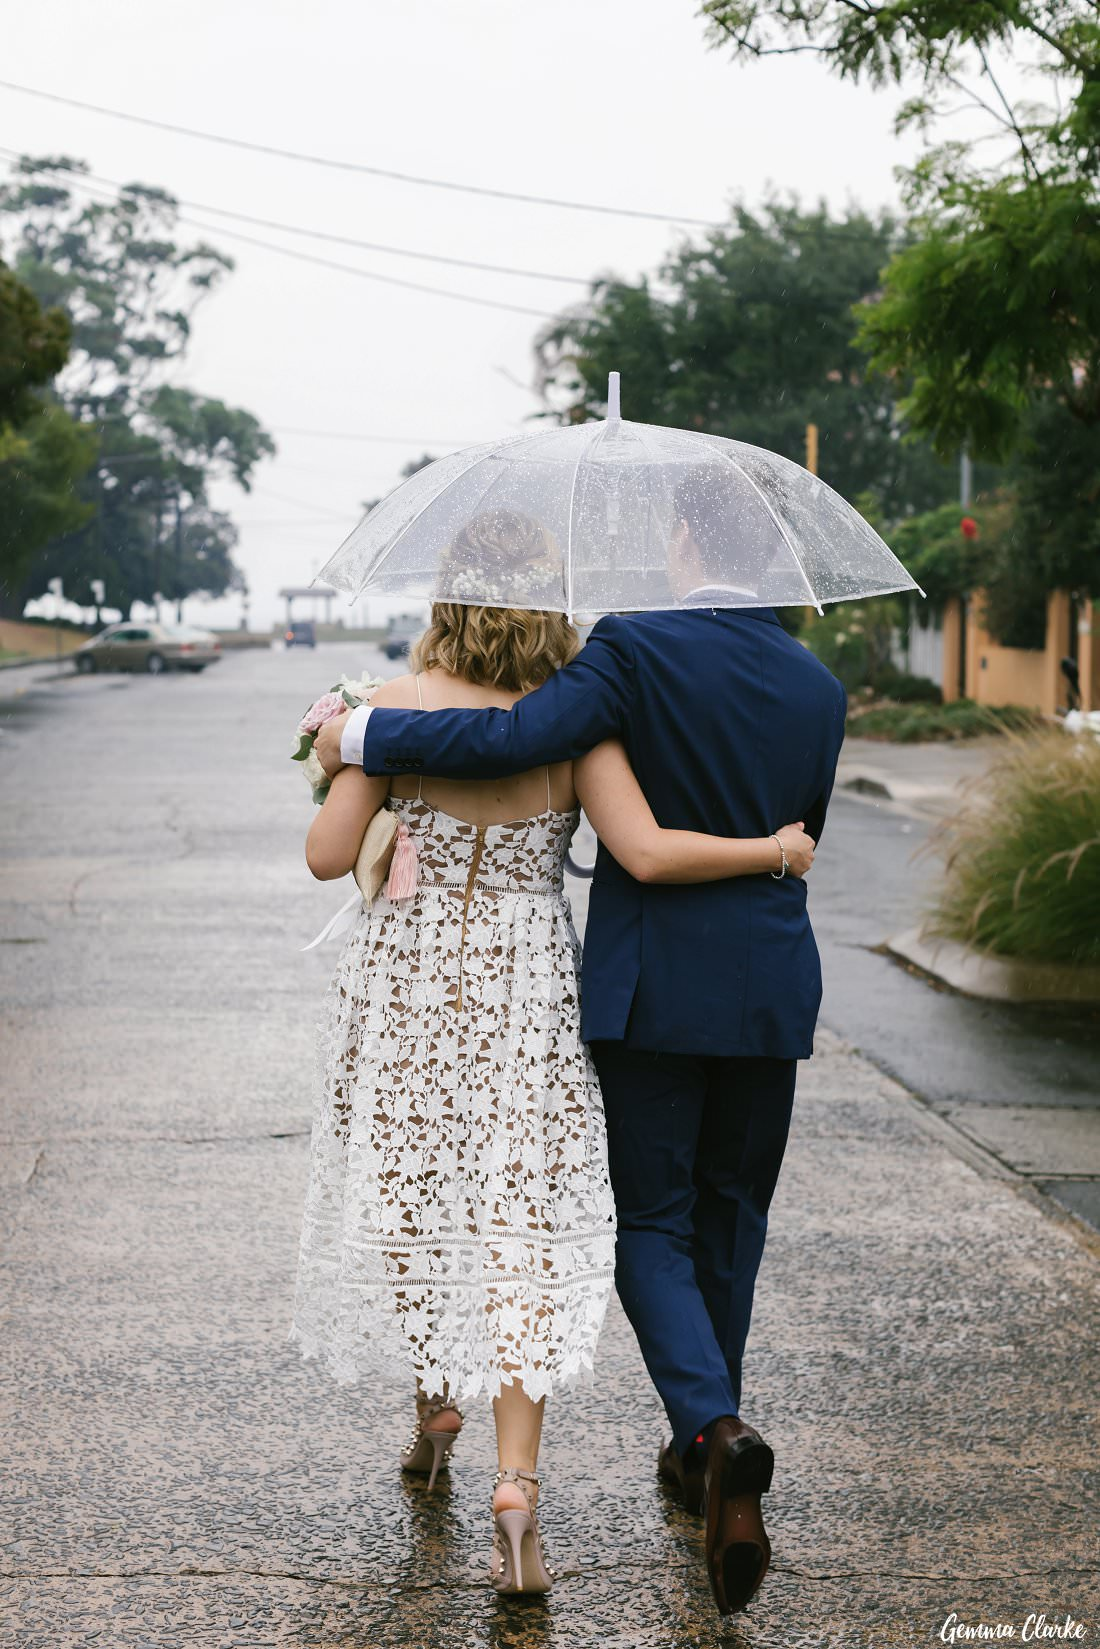 Happily walking arm and arm after they said their vows - Rain on your Wedding Day?